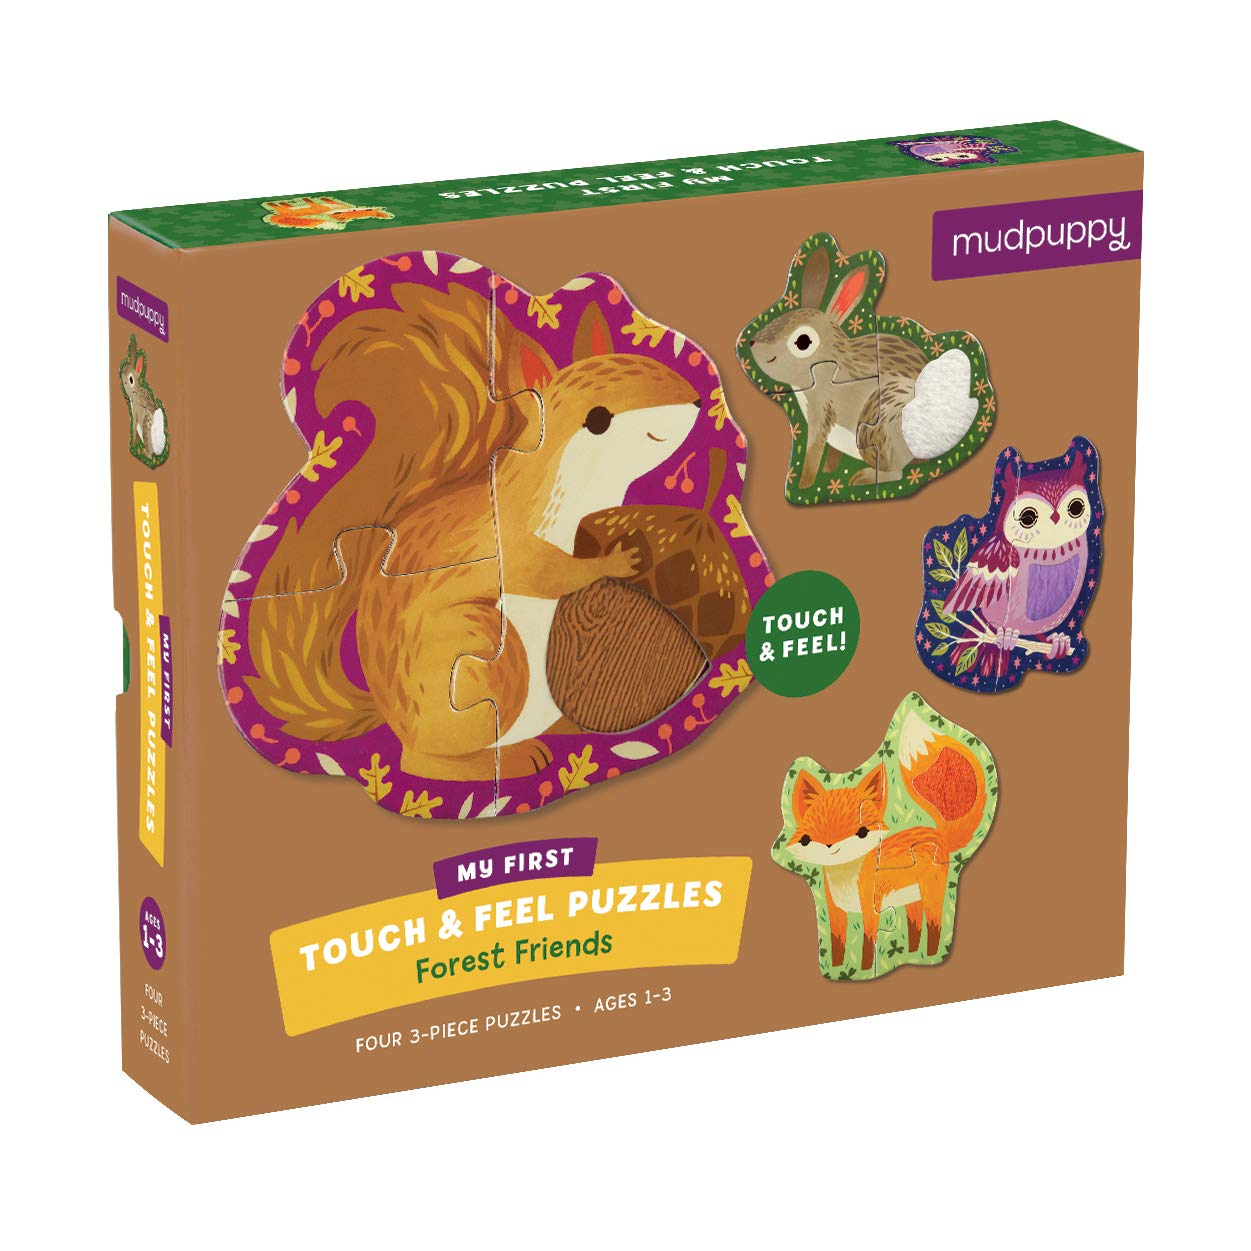 Mudpuppy Forest Friends My First Touch & Feel Puzzle – Great for Kids Age 1-3 - 4 Animal Shaped 3-Piece Puzzles – Textured Pieces for a Fun Sensory Experience – Introduce Problem-Solving to Toddlers